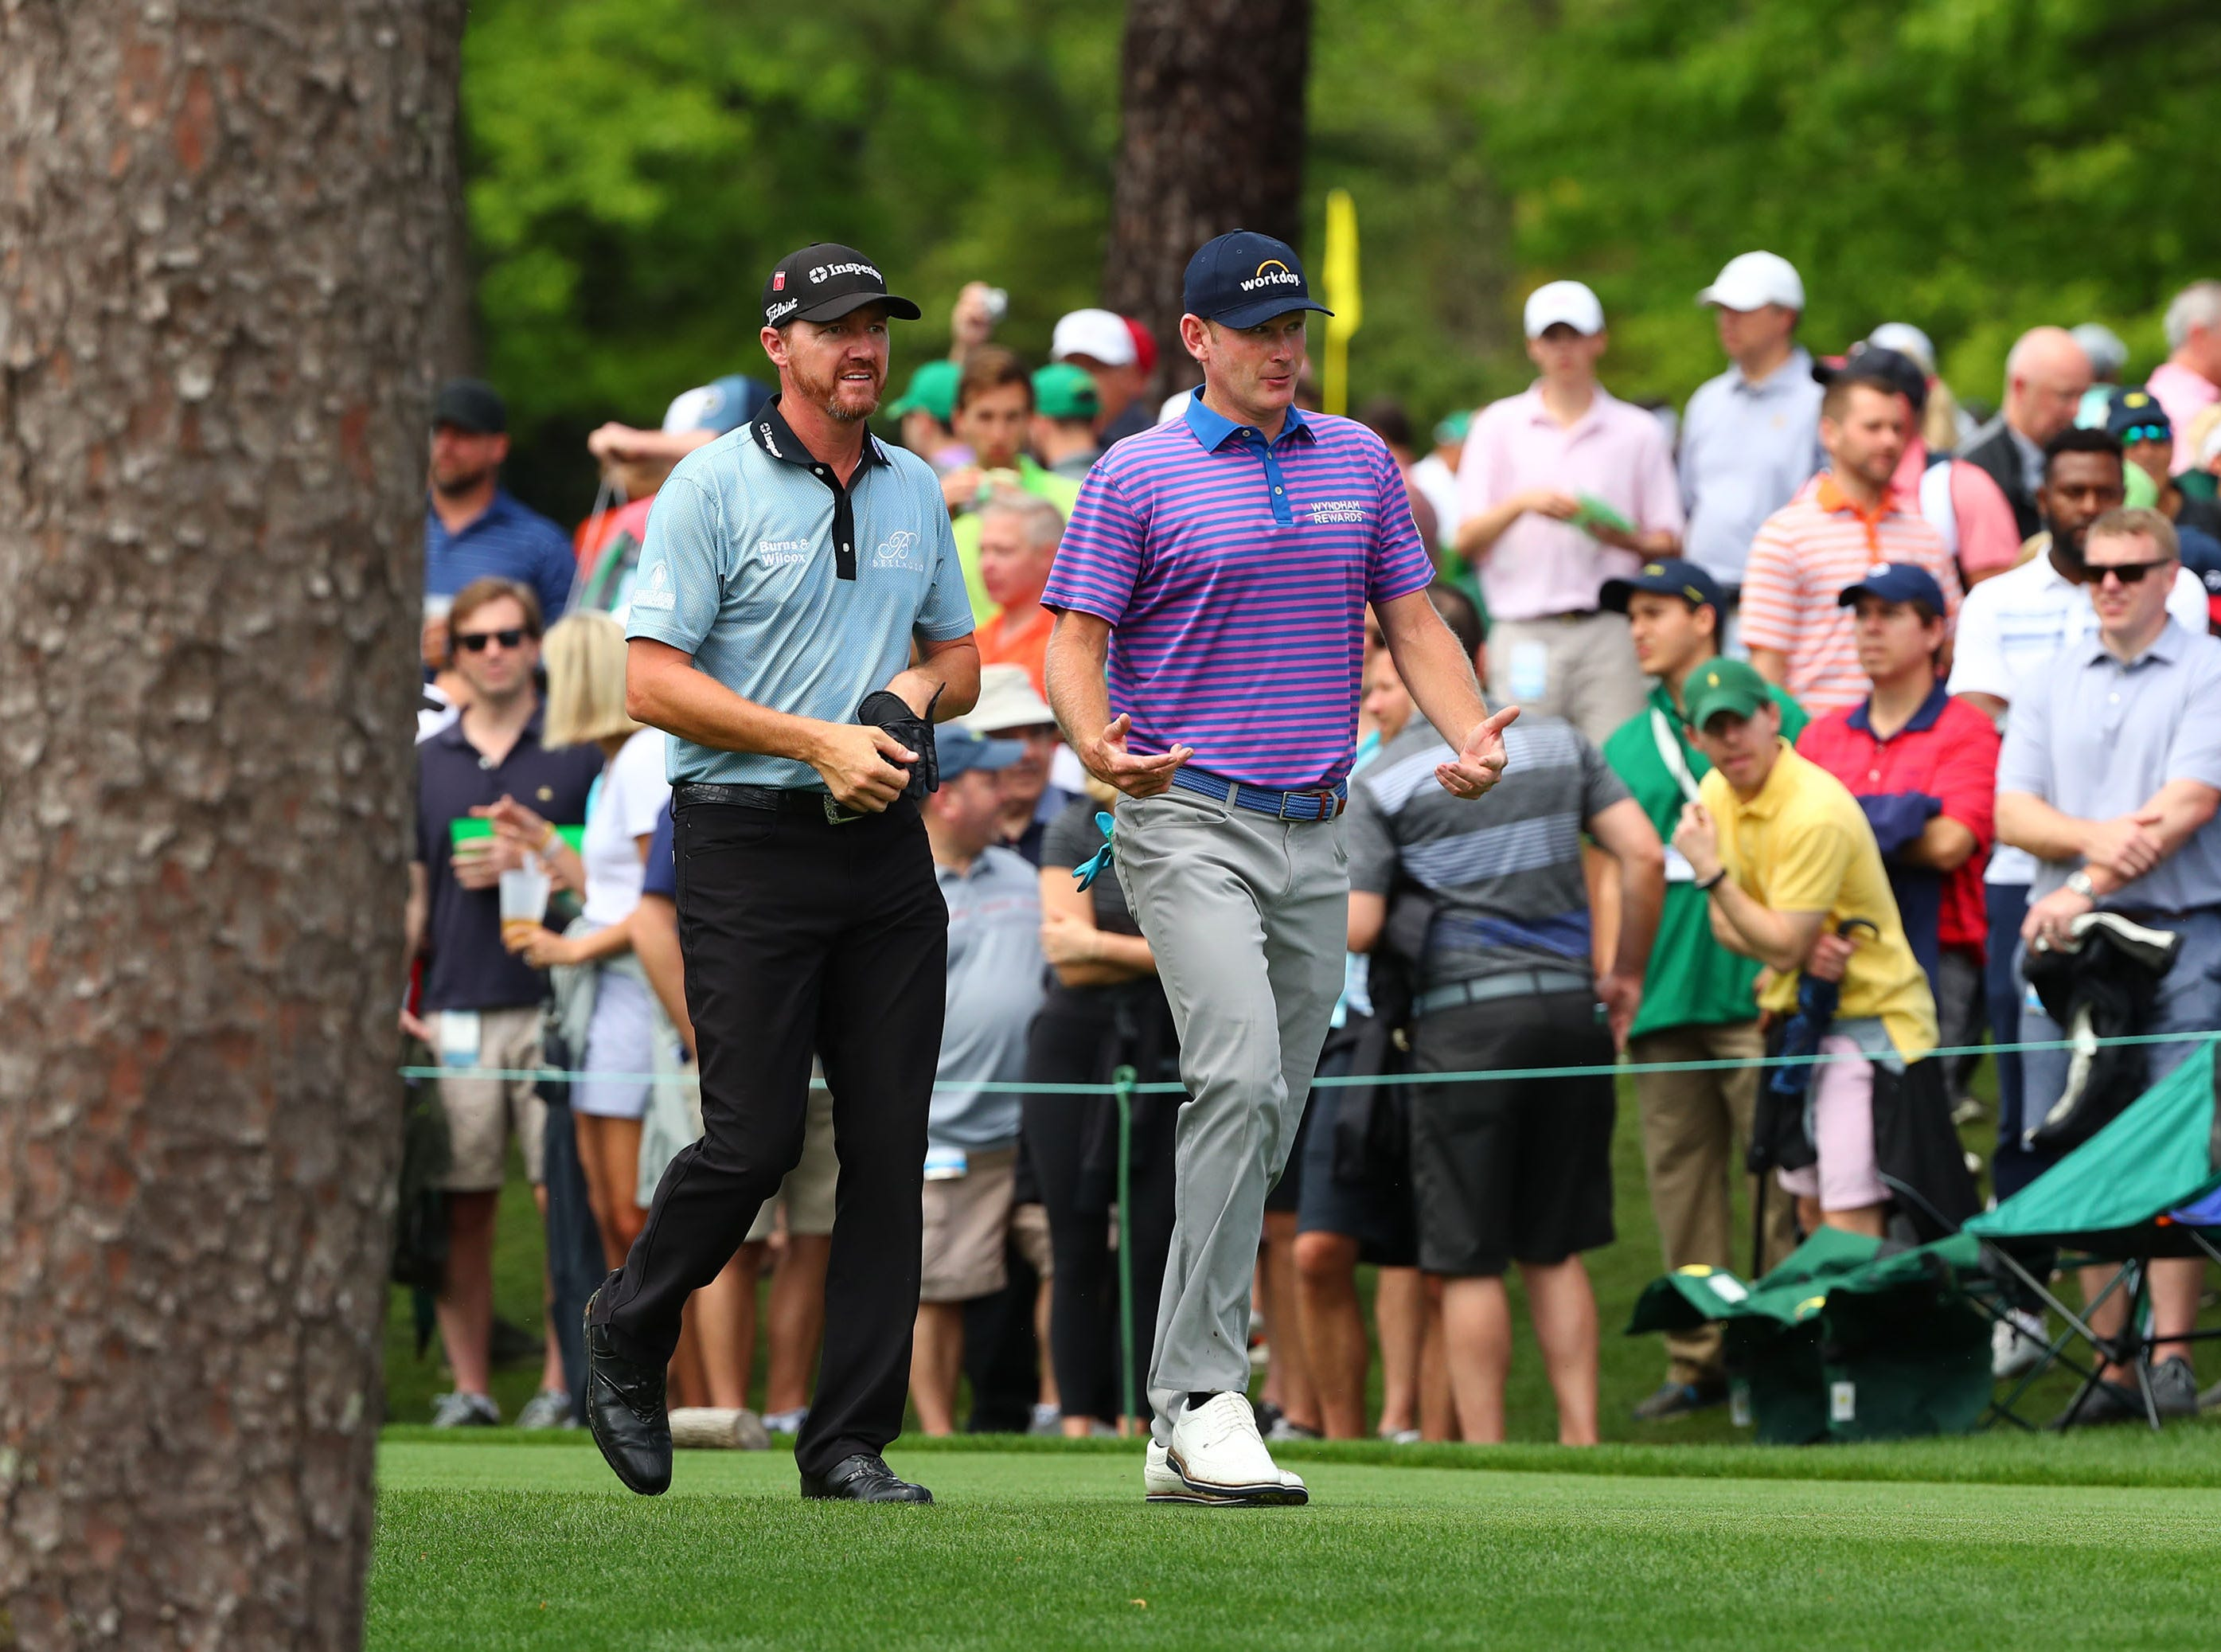 Apr 9, 2019; Augusta, GA, USA; Jimmy Walker and Brandt Snedeker walk off the tee box on the 17th hole during a practice round for The Masters golf tournament at Augusta National Golf Club. Mandatory Credit: Rob Schumacher-USA TODAY Sports